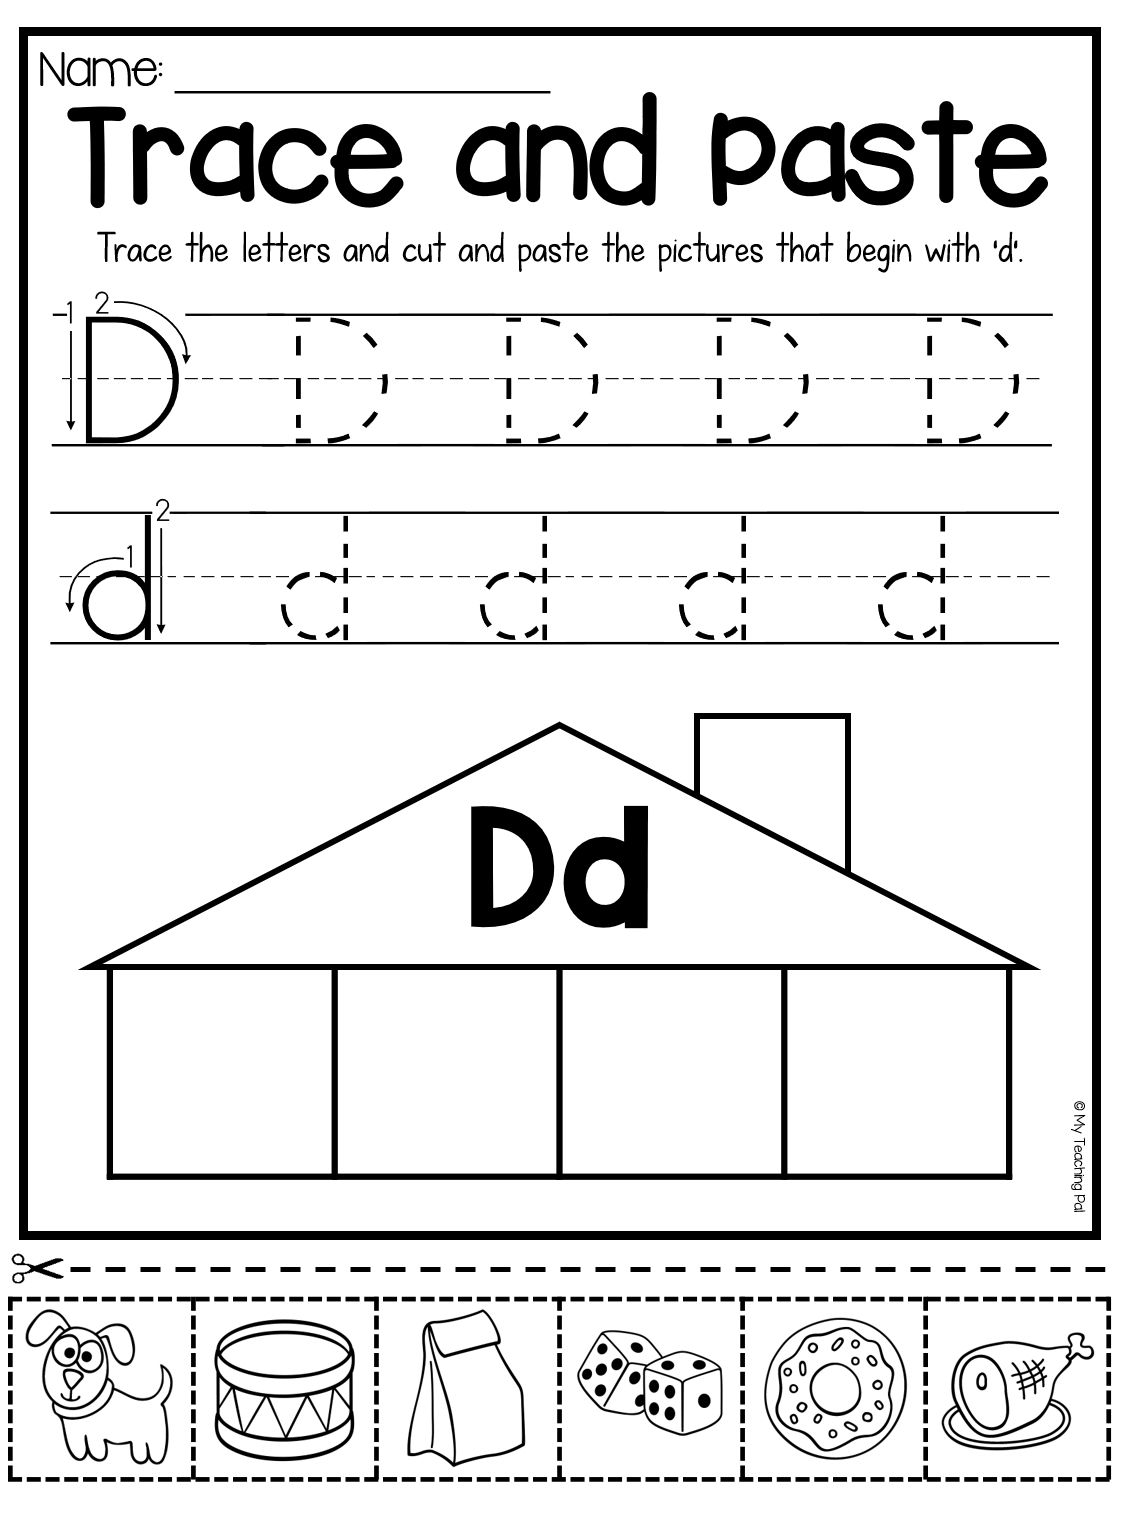 Beginning Sounds Worksheets - Trace And Paste | Beginning throughout D Letter Worksheets